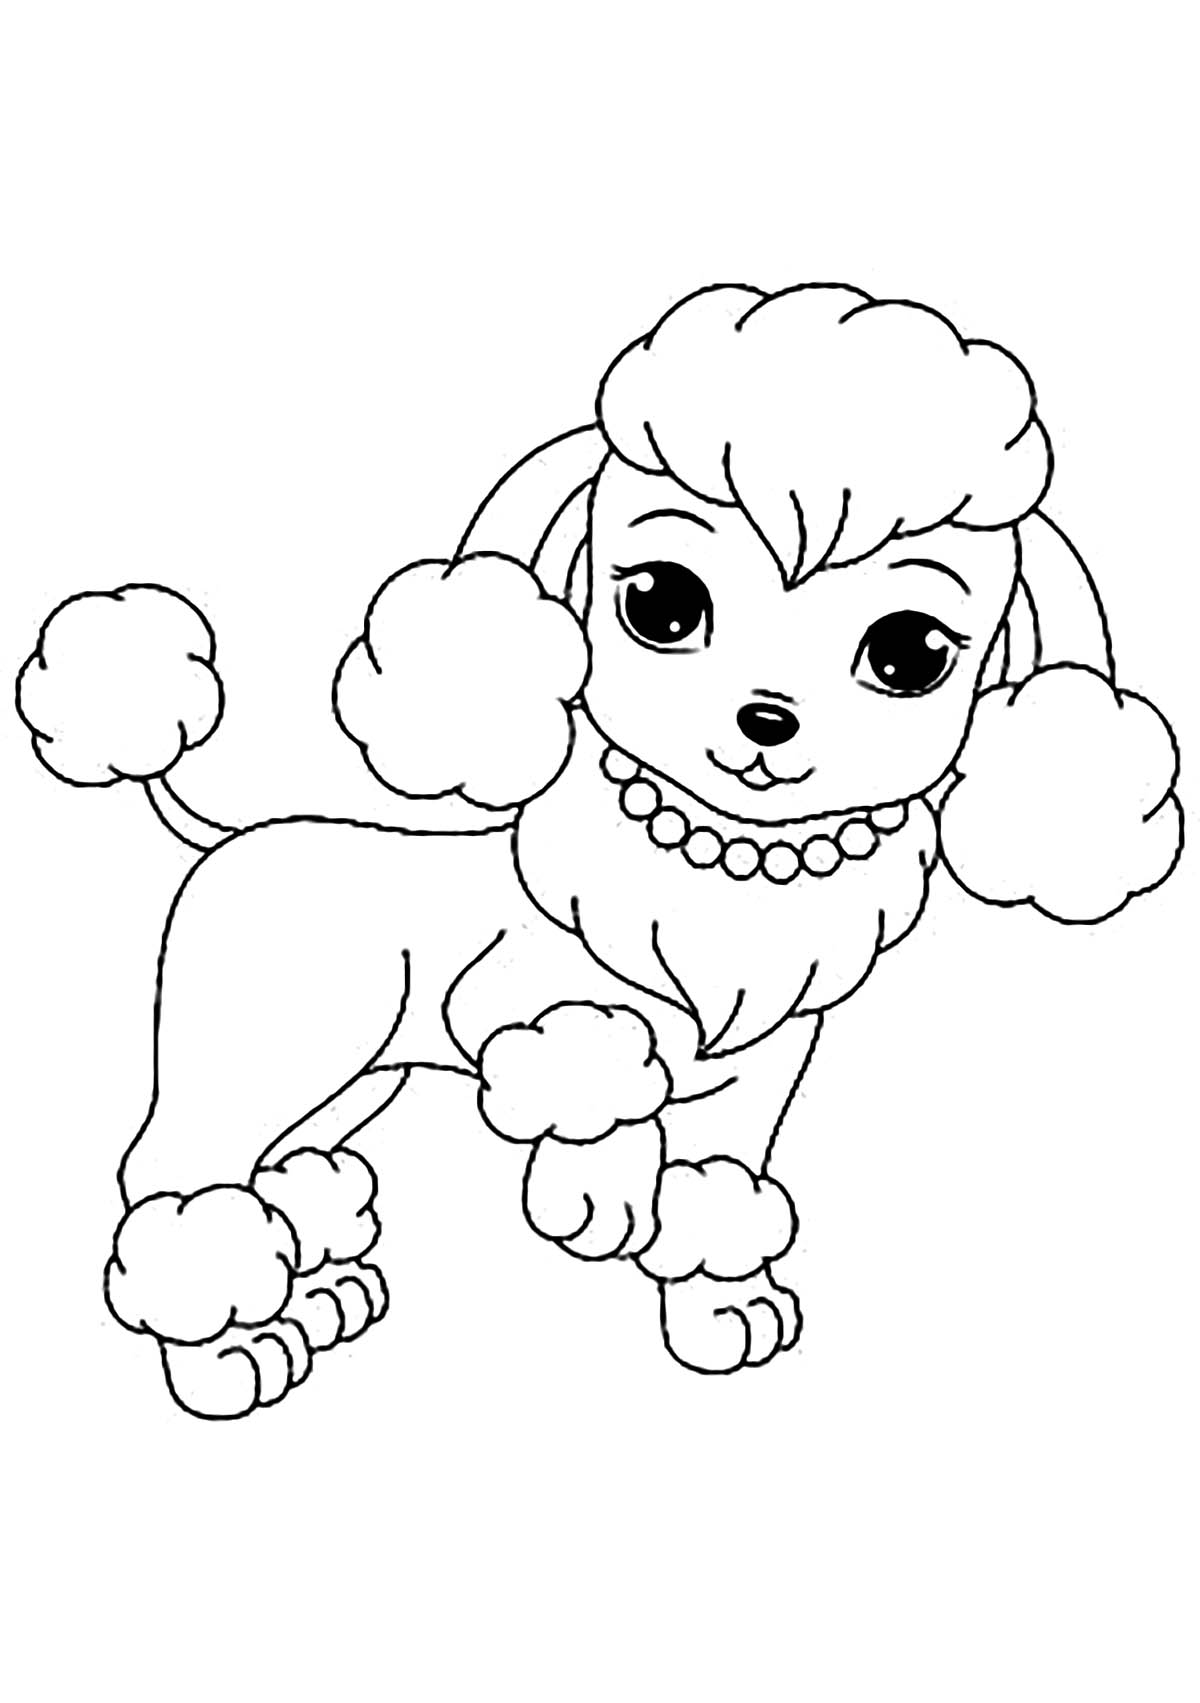 puppy pictures for coloring dog for kids dogs kids coloring pages coloring puppy pictures for